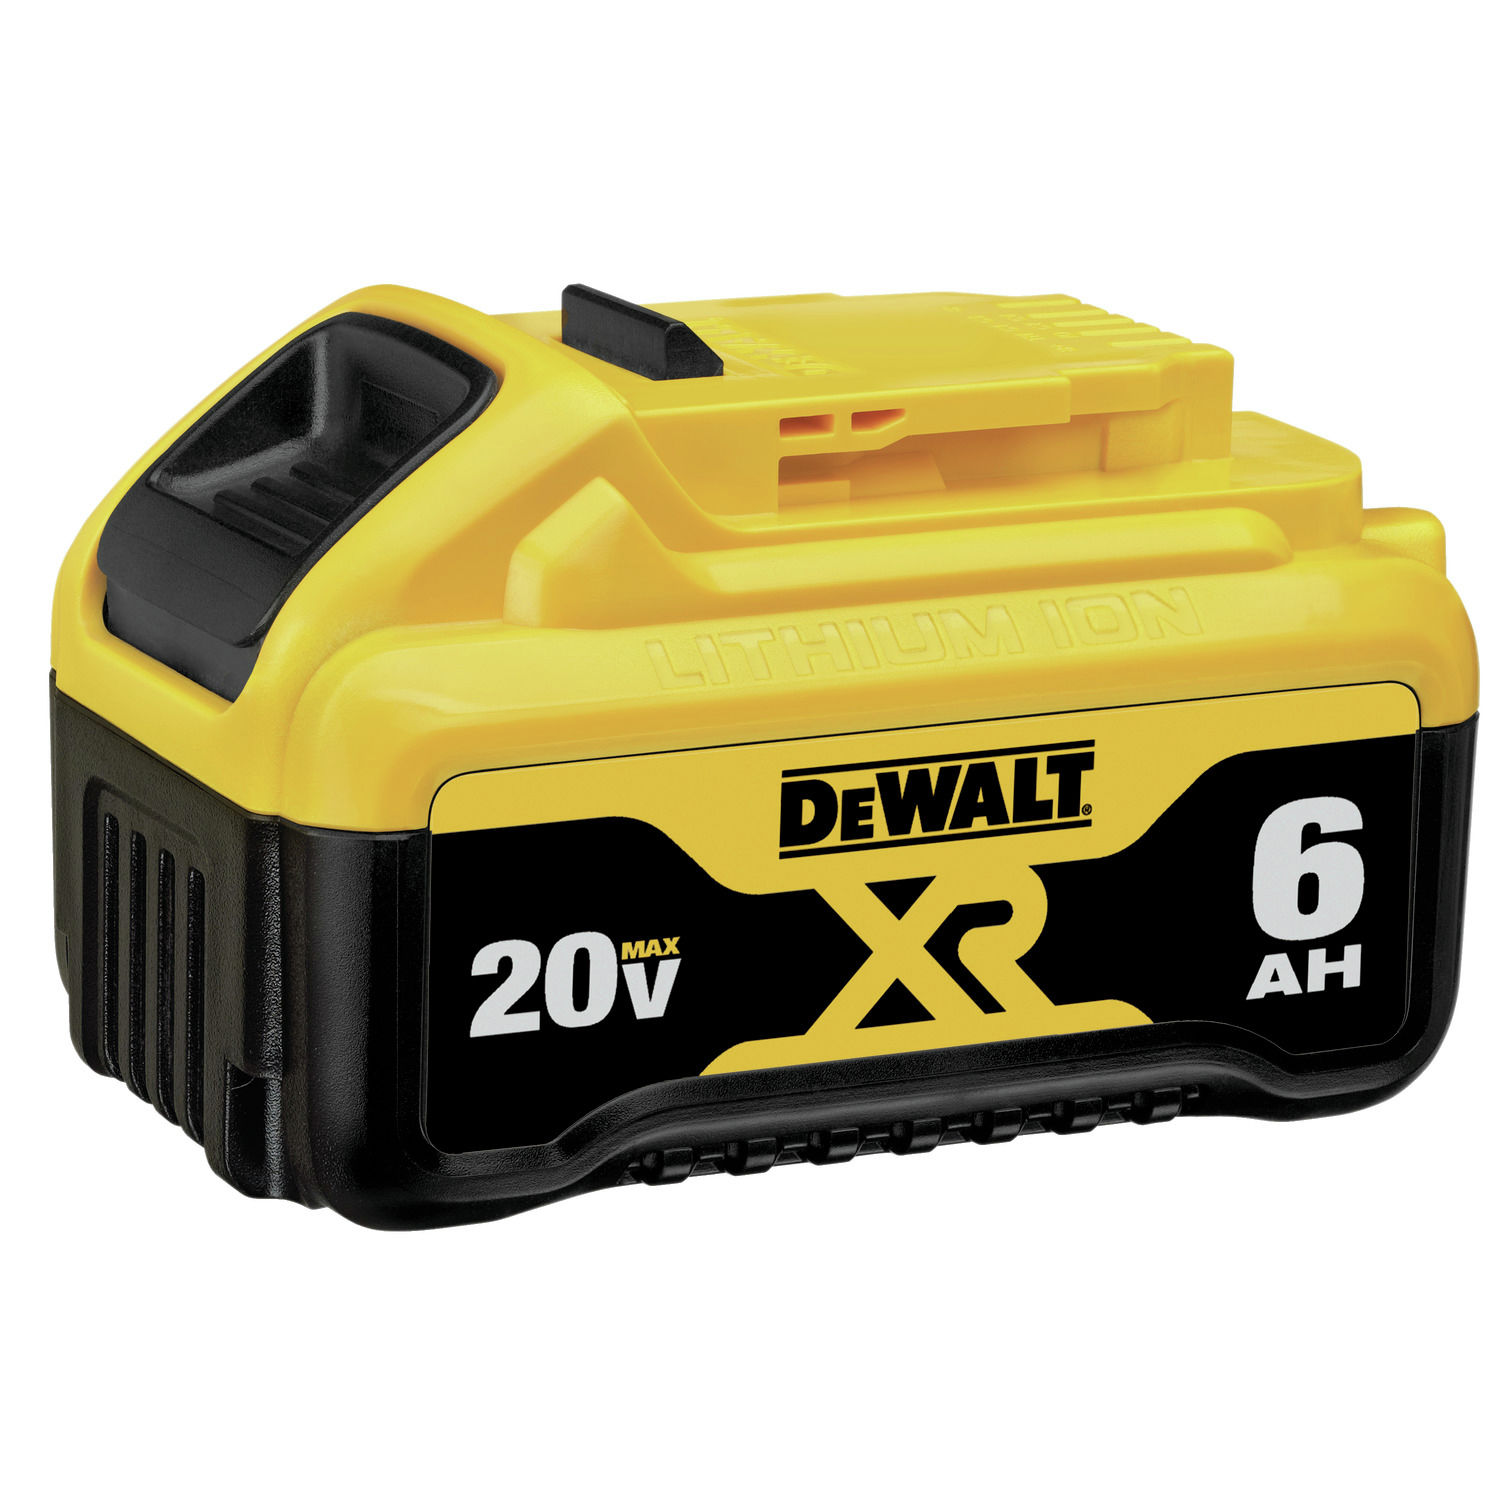 Dewalt DCB206 battery